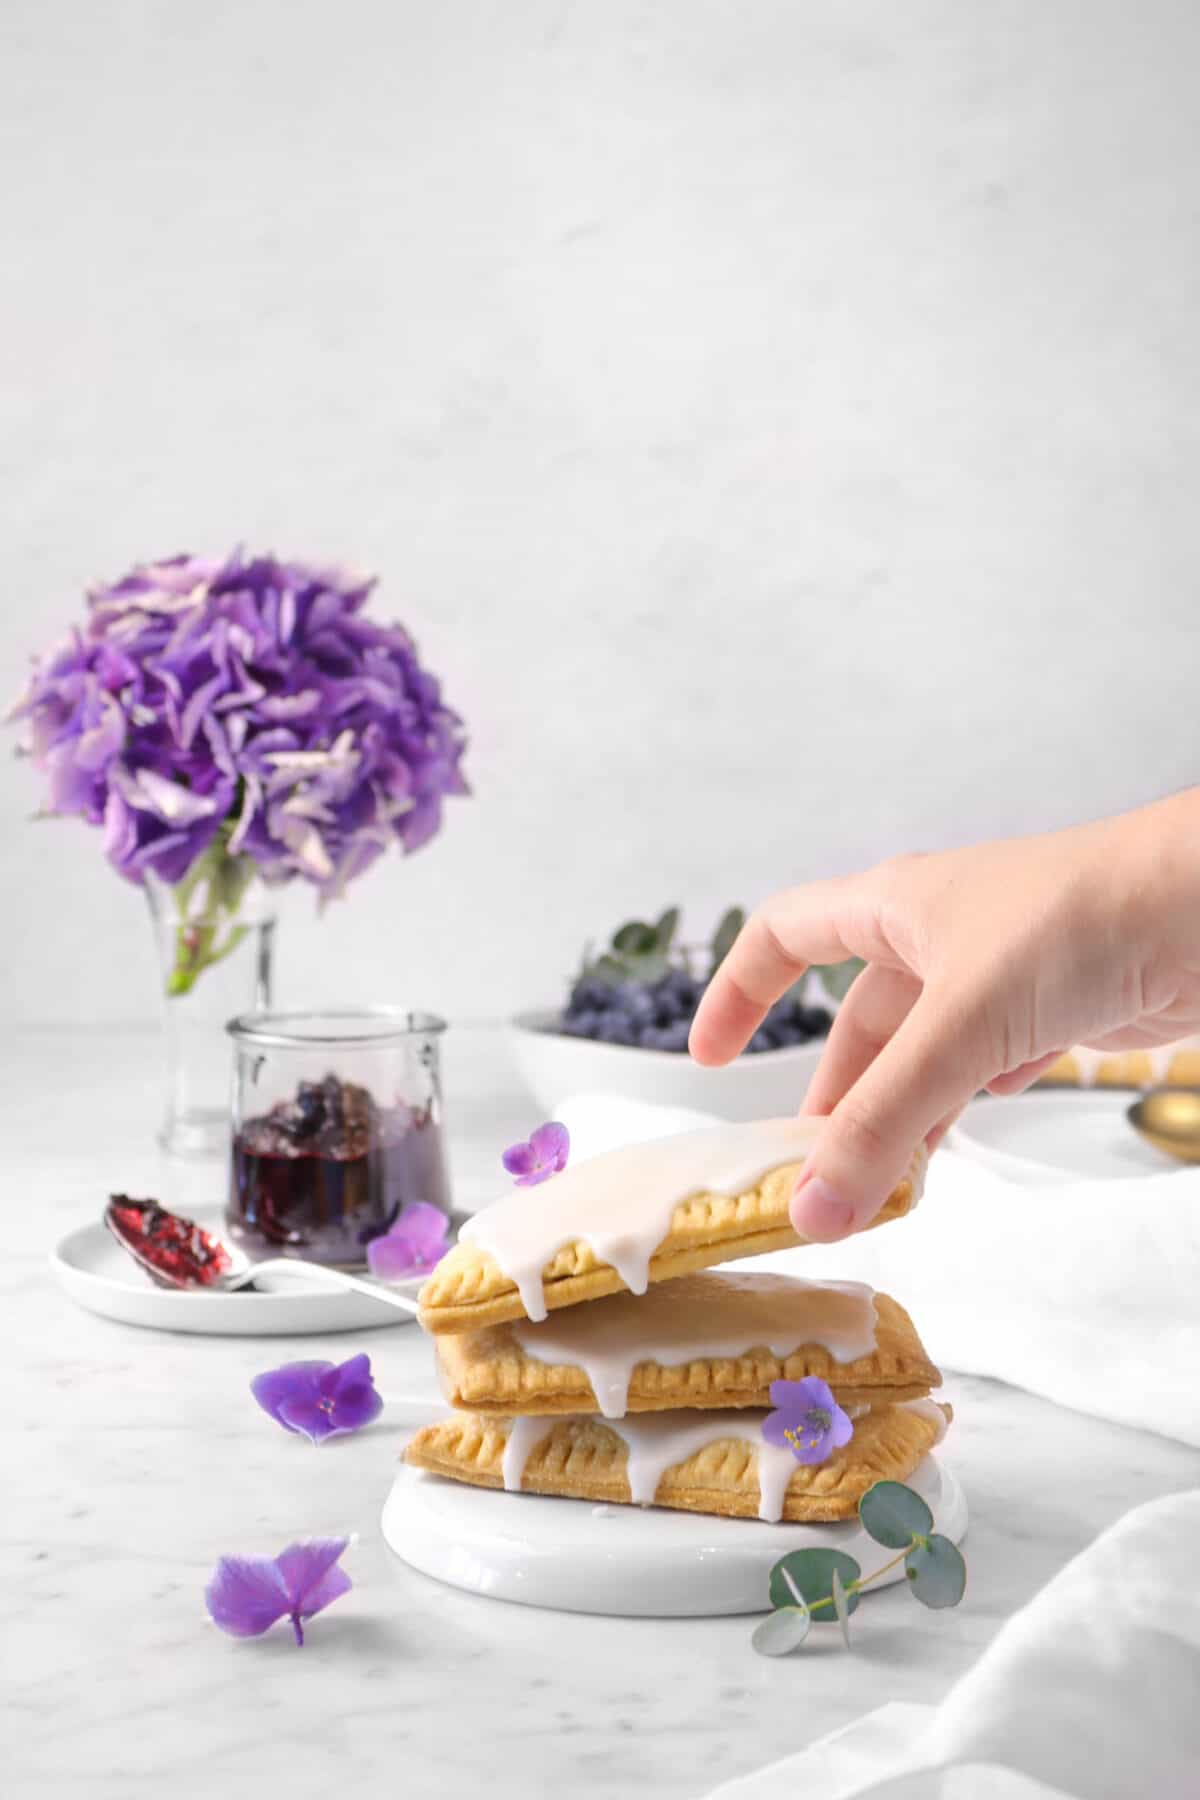 a hand grabbing a pop tart off a stack with flowers, jam, and blueberries in the background